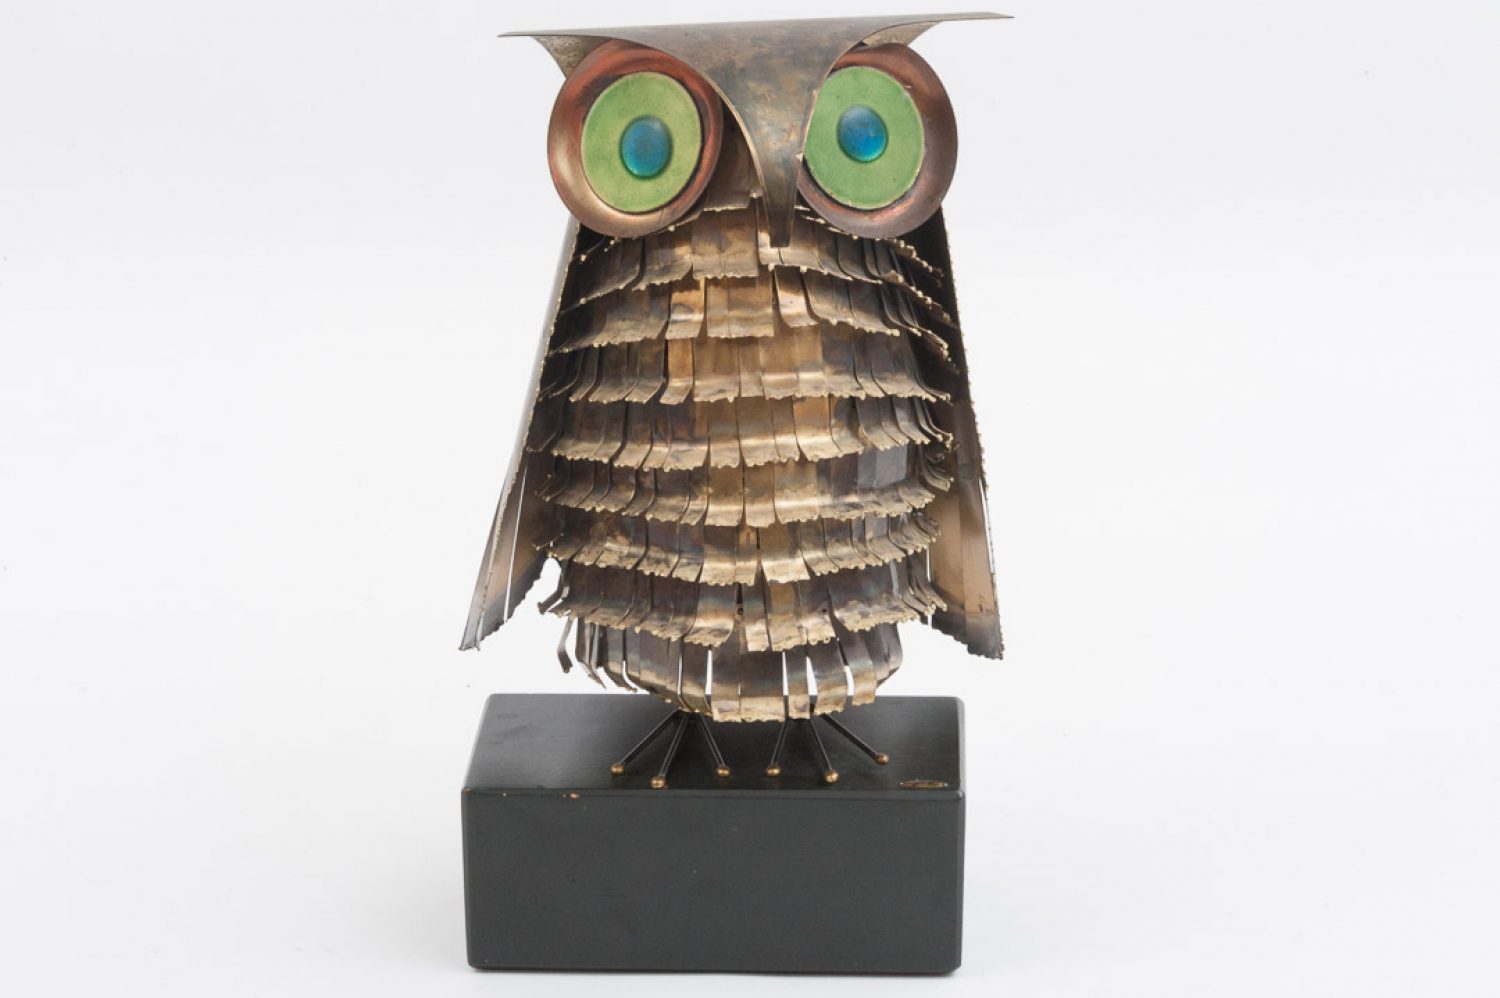 Owl sculpture by Curtis Jere